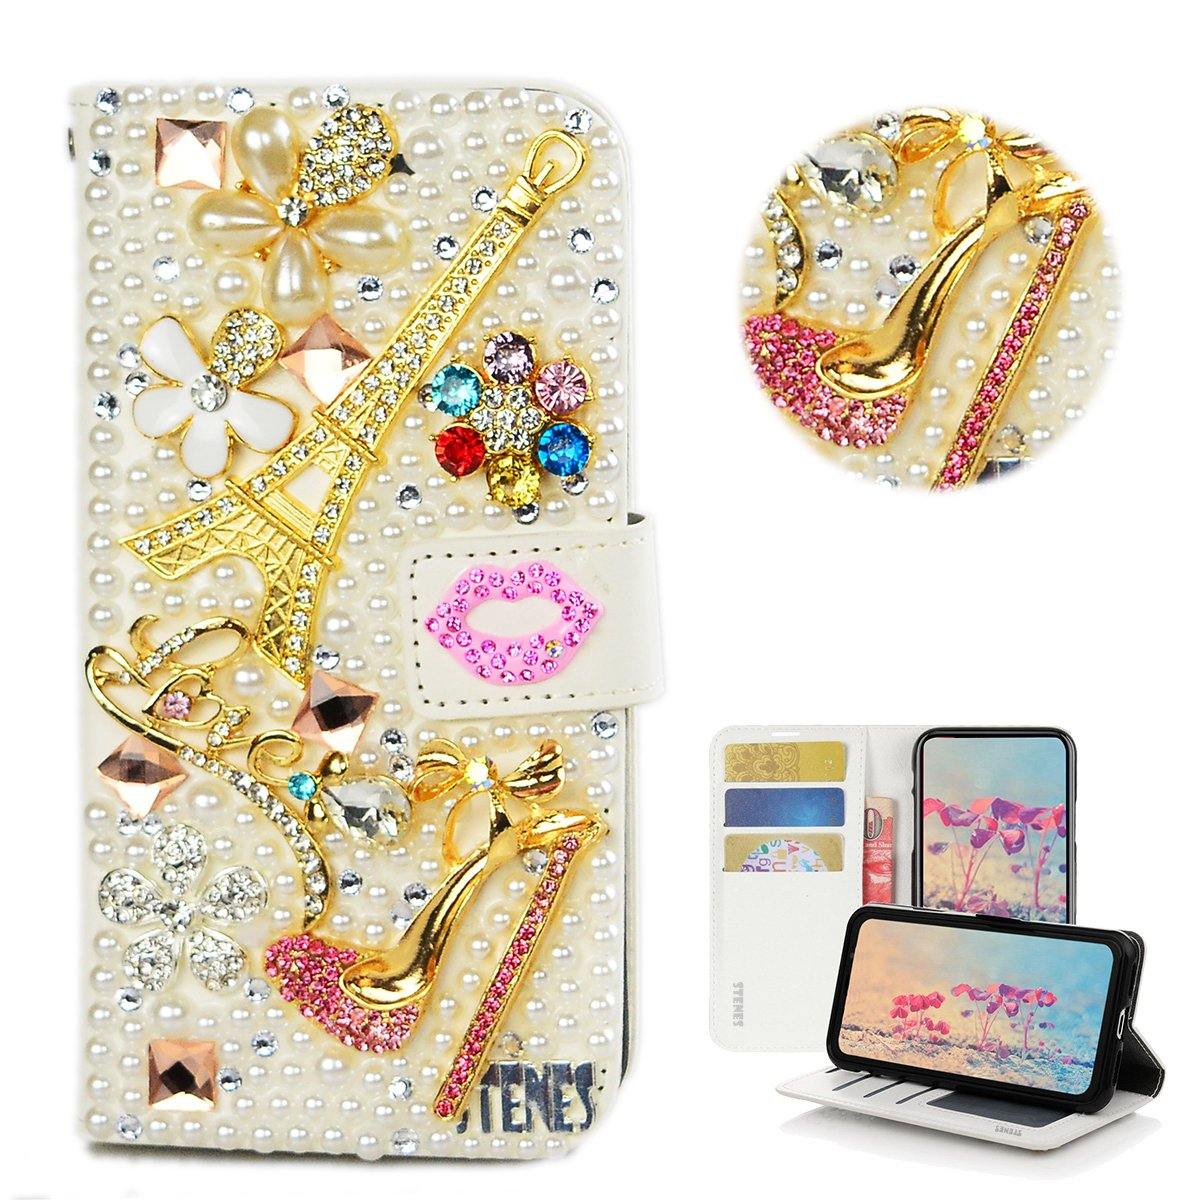 STENES Galaxy S9 Case - Stylish - 3D Handmade Crystal Eiffel Tower Girls High Heel Flowers Lips Wallet Credit Card Slots Fold Stand Leather Cover for Samsung Galaxy S9 - Pink